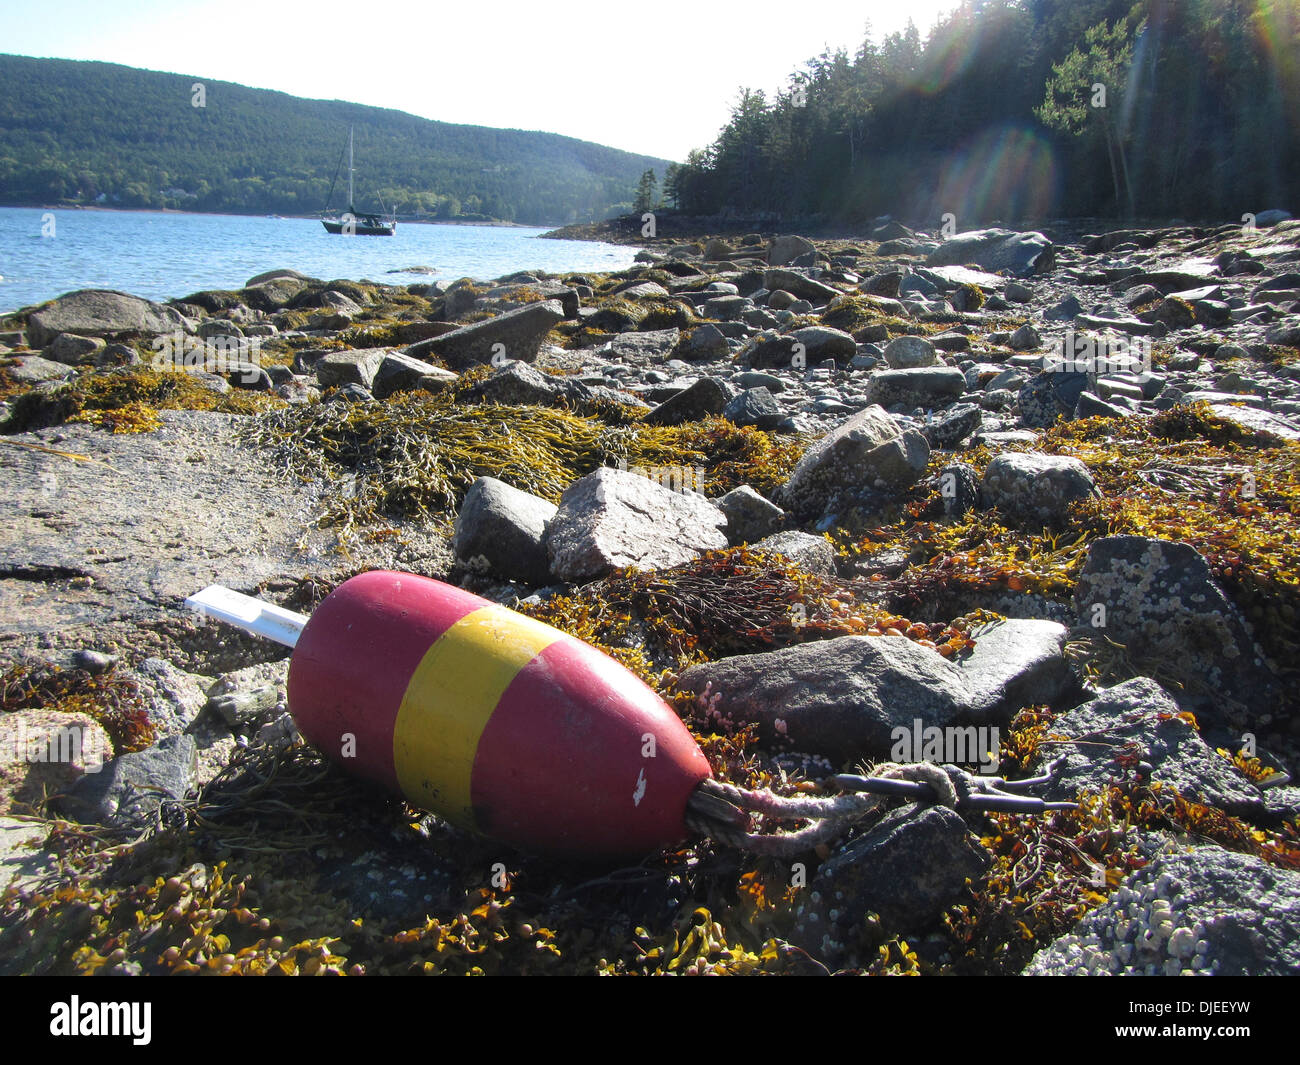 A washed up lobster buoy in the fjord of Somes Sound, Maine, USA - Stock Image